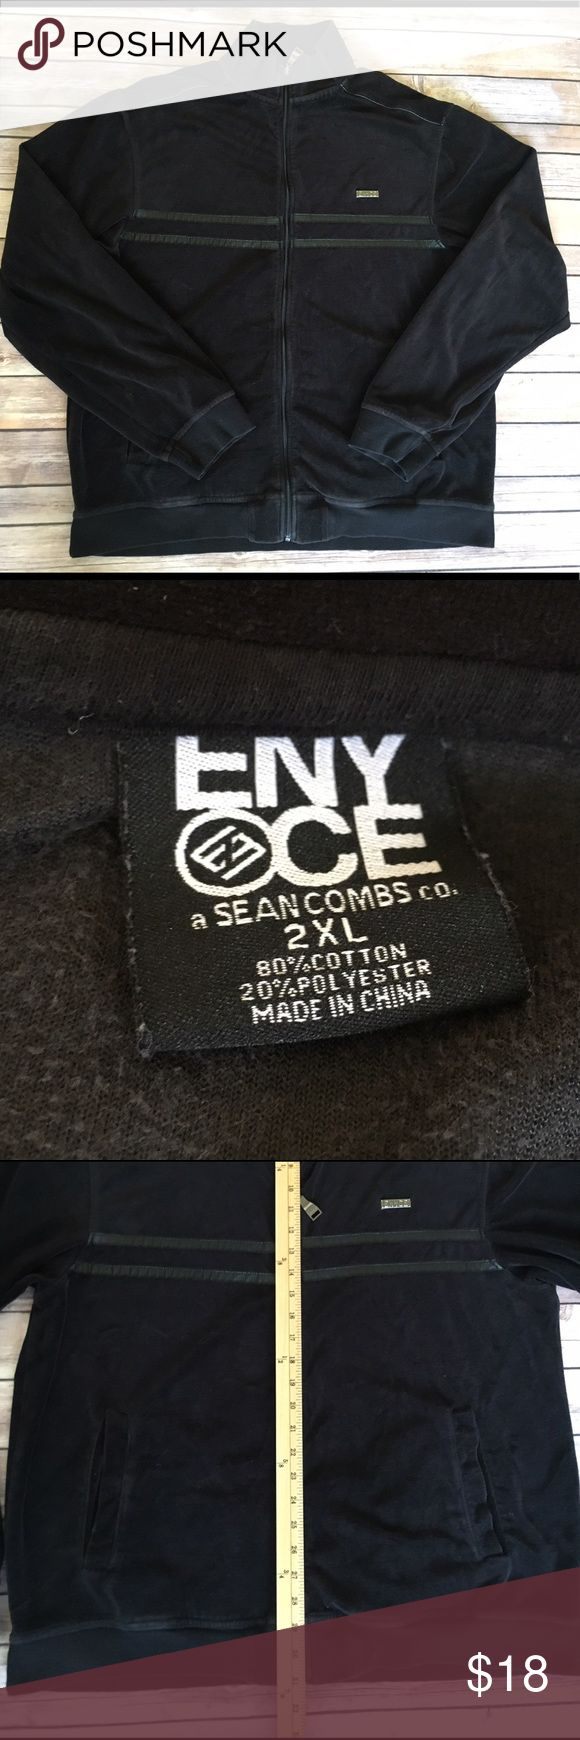 Sean Combs ENYCE Black Hoodie Sweater 2XL XXL Sean Combs ENYCE Black Hoodie Sweater 2XL XXL Sean Combs ENYCE Jackets & Coats Lightweight & Shirt Jackets